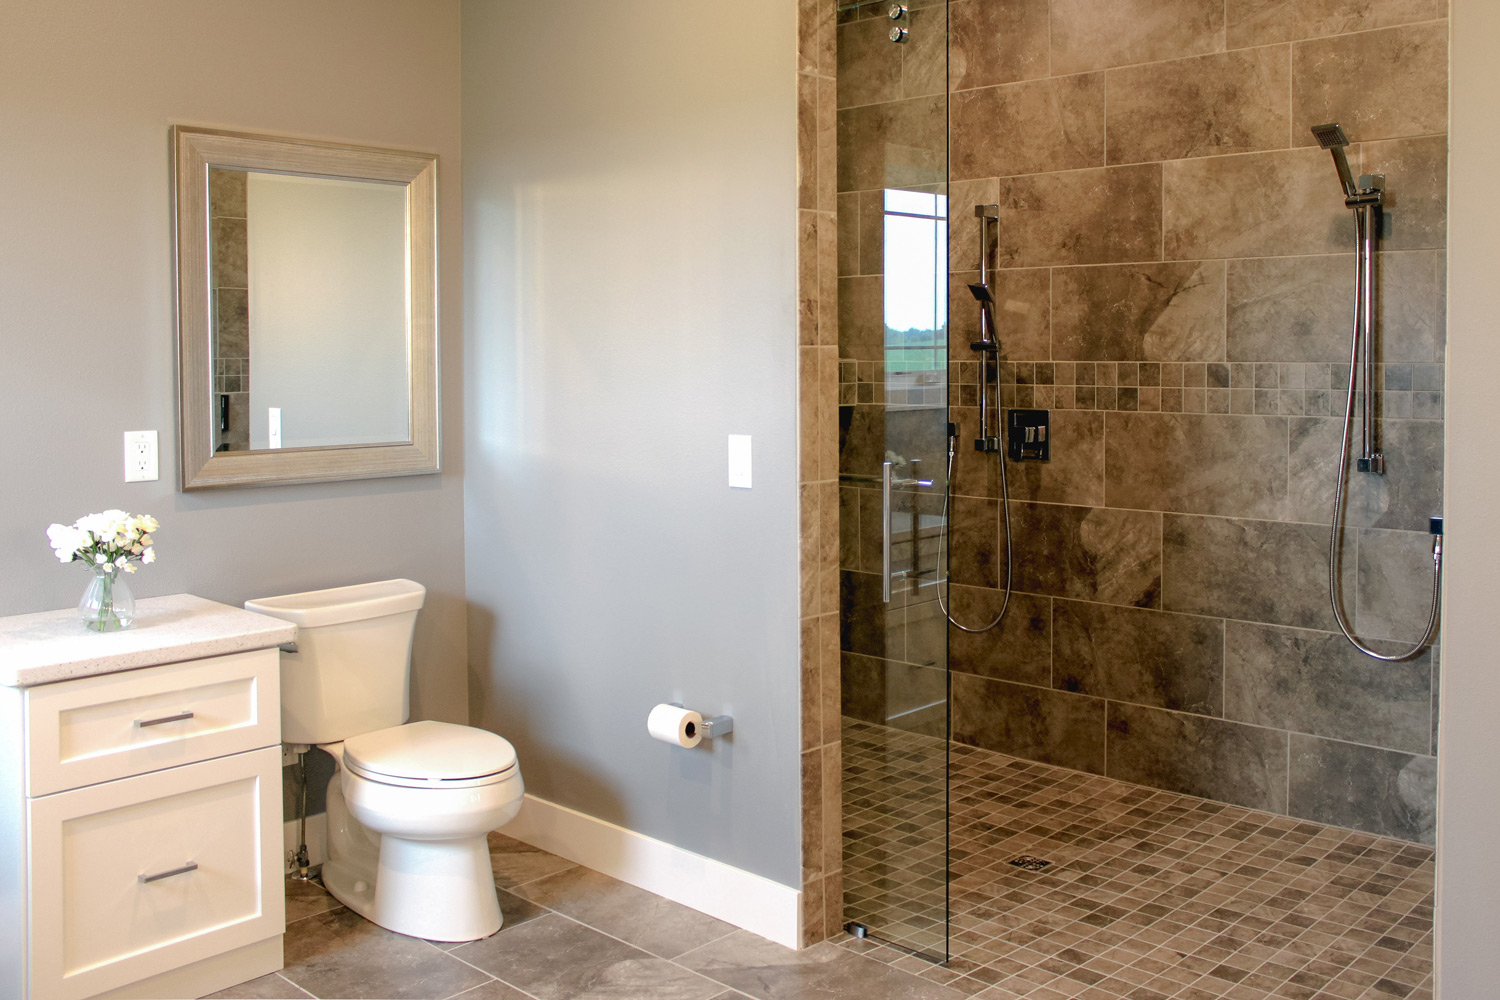 - A universal design bathroom will ideally be large enough for wheelchair accessibility.